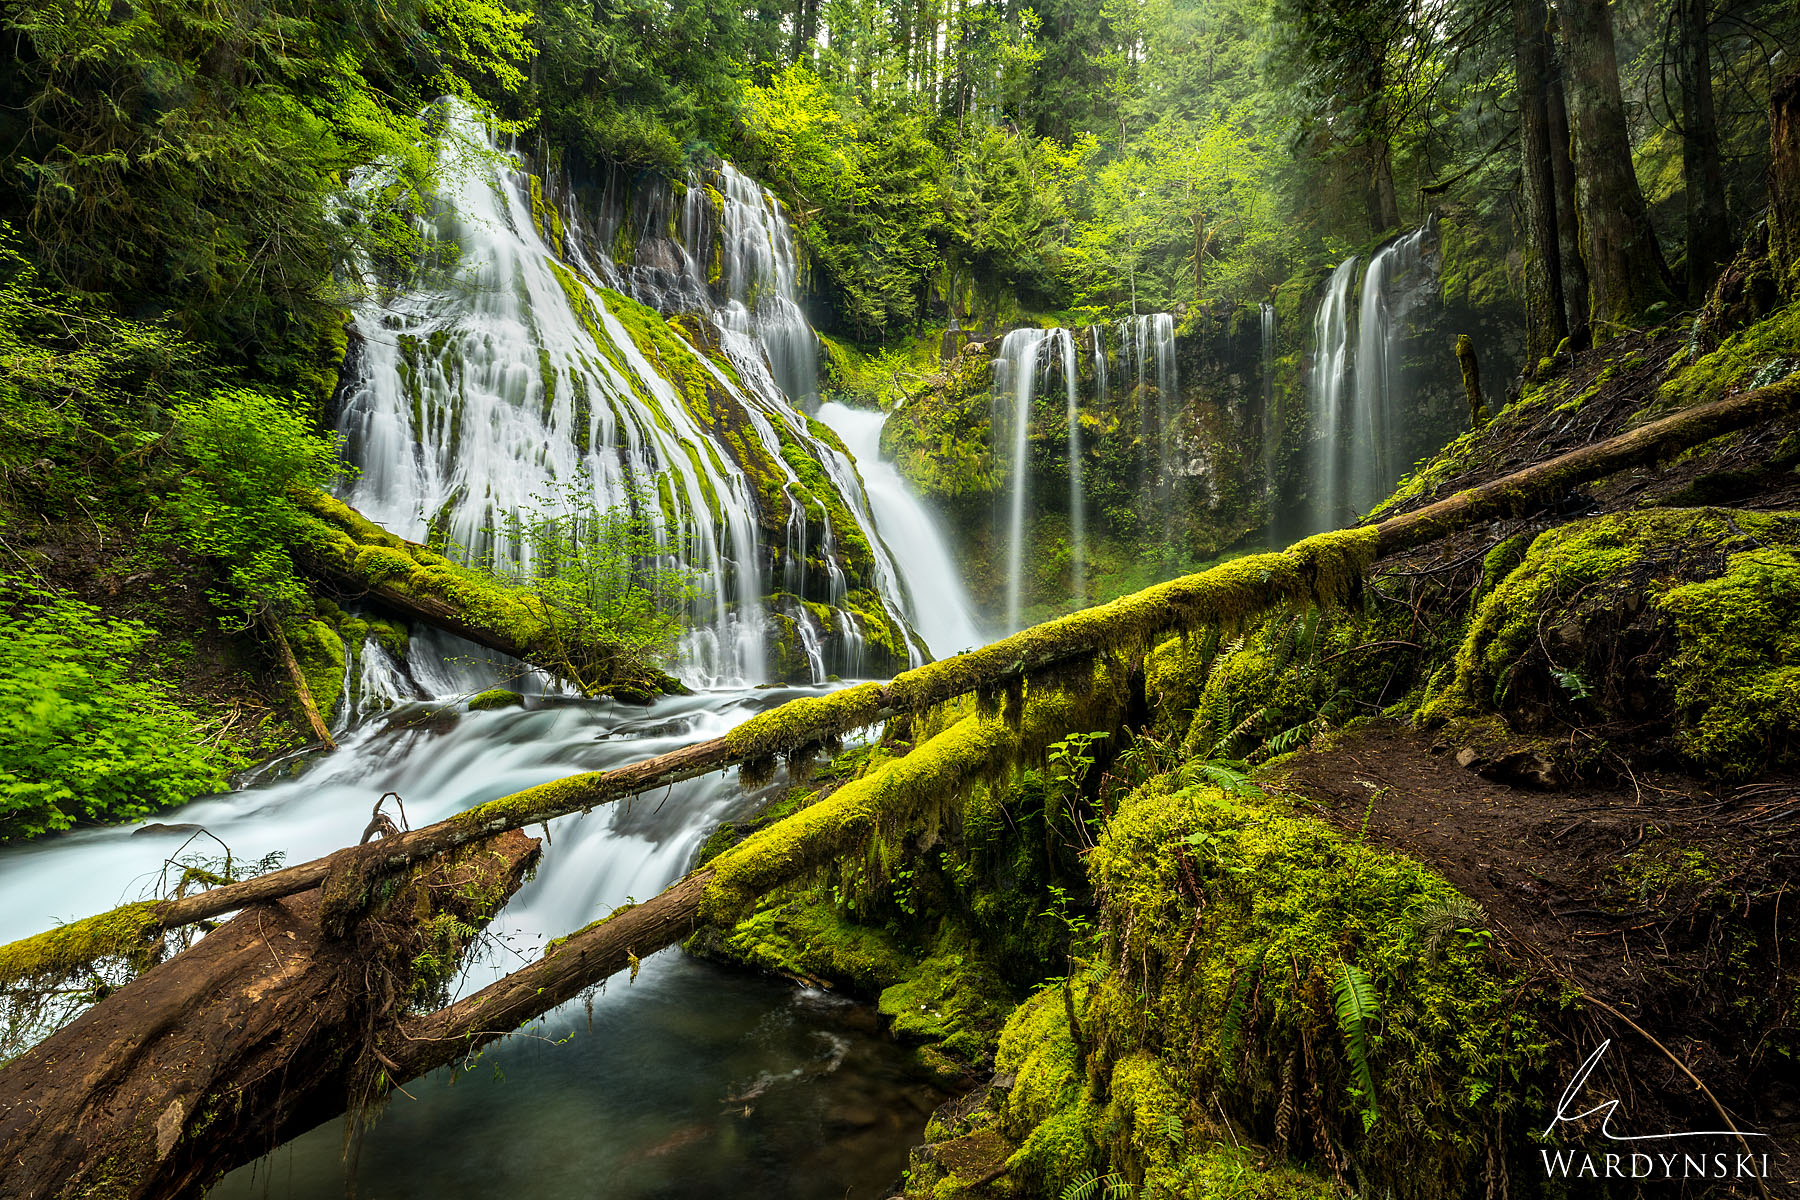 Fine Art Print | Limited Edition of 100  Waterfalls pour from the lush green forests of the Columbia River Gorge in Washington...